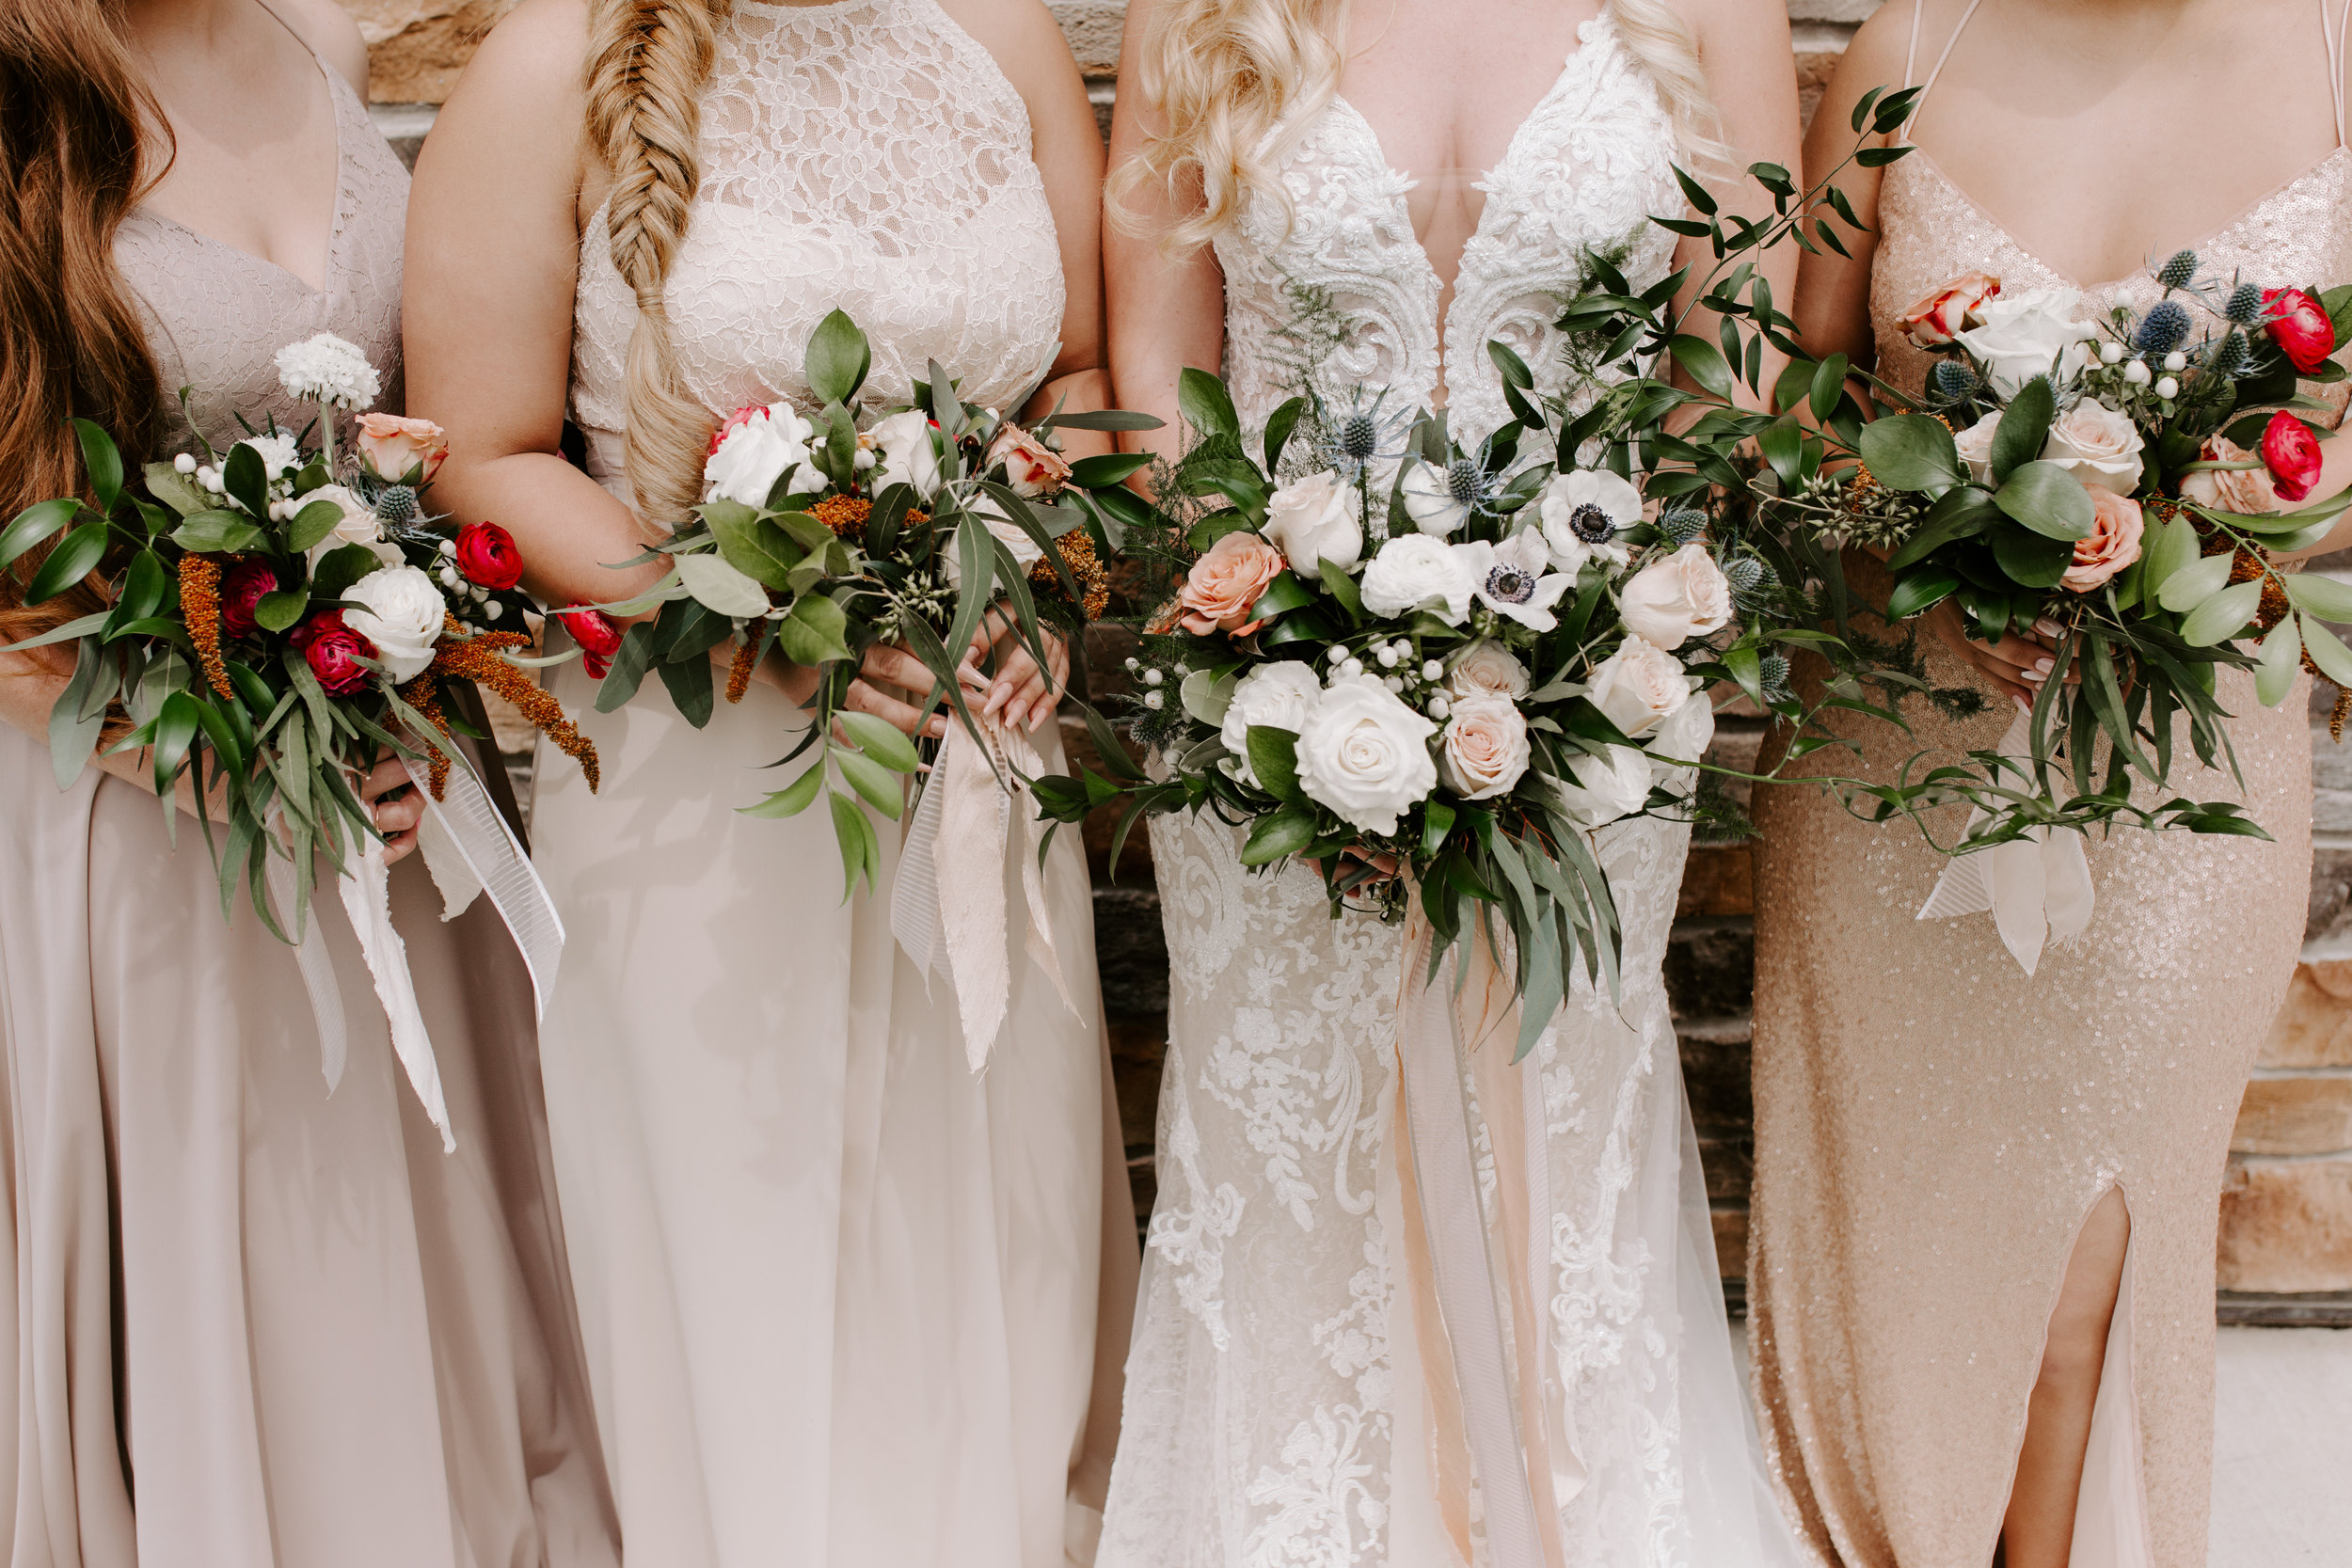 Bridesmaids and Bride in Adel Iowa at Country Lane Lodge, holding bouquets of blush roses, poppies, and designer ribbon with blush grey and champagne designer bridal gowns from West Des Moines Iowa